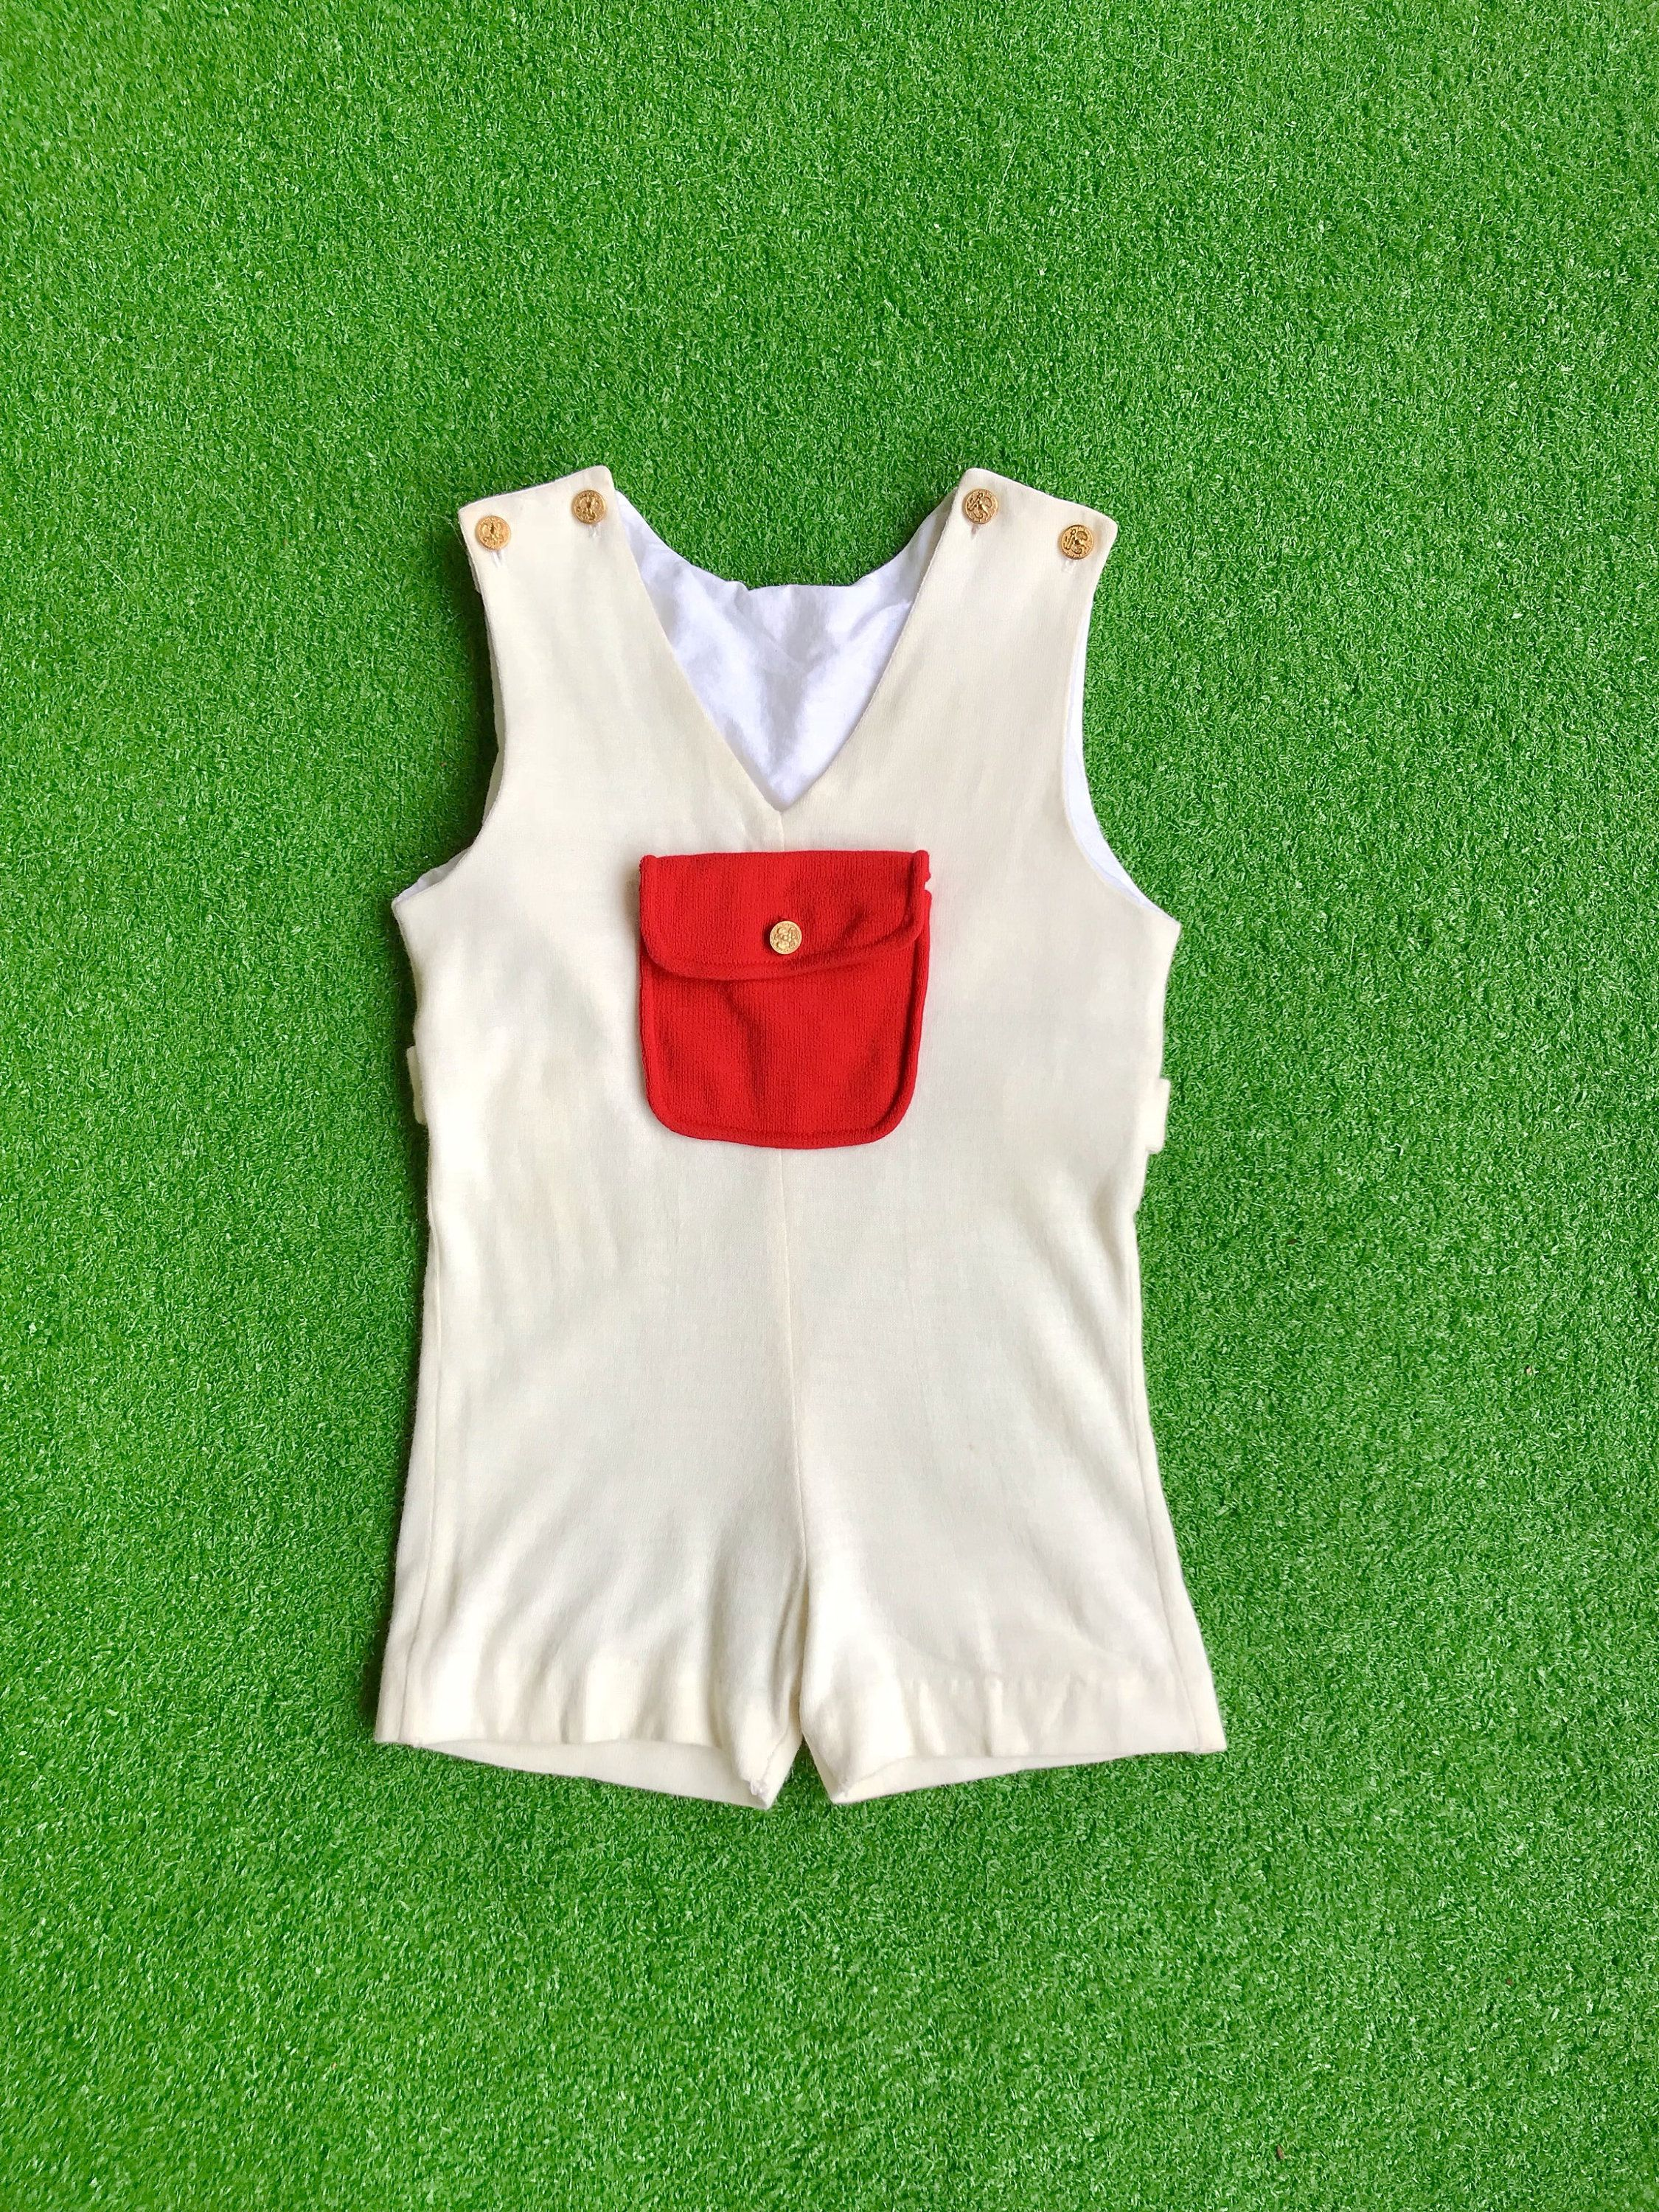 10a4a3f1914d Vintage 1960s mod unisex children s romper retro 60s 70s cream off white red  pocketed toddler playsuit jumpsuit one piece sleeveless shorts